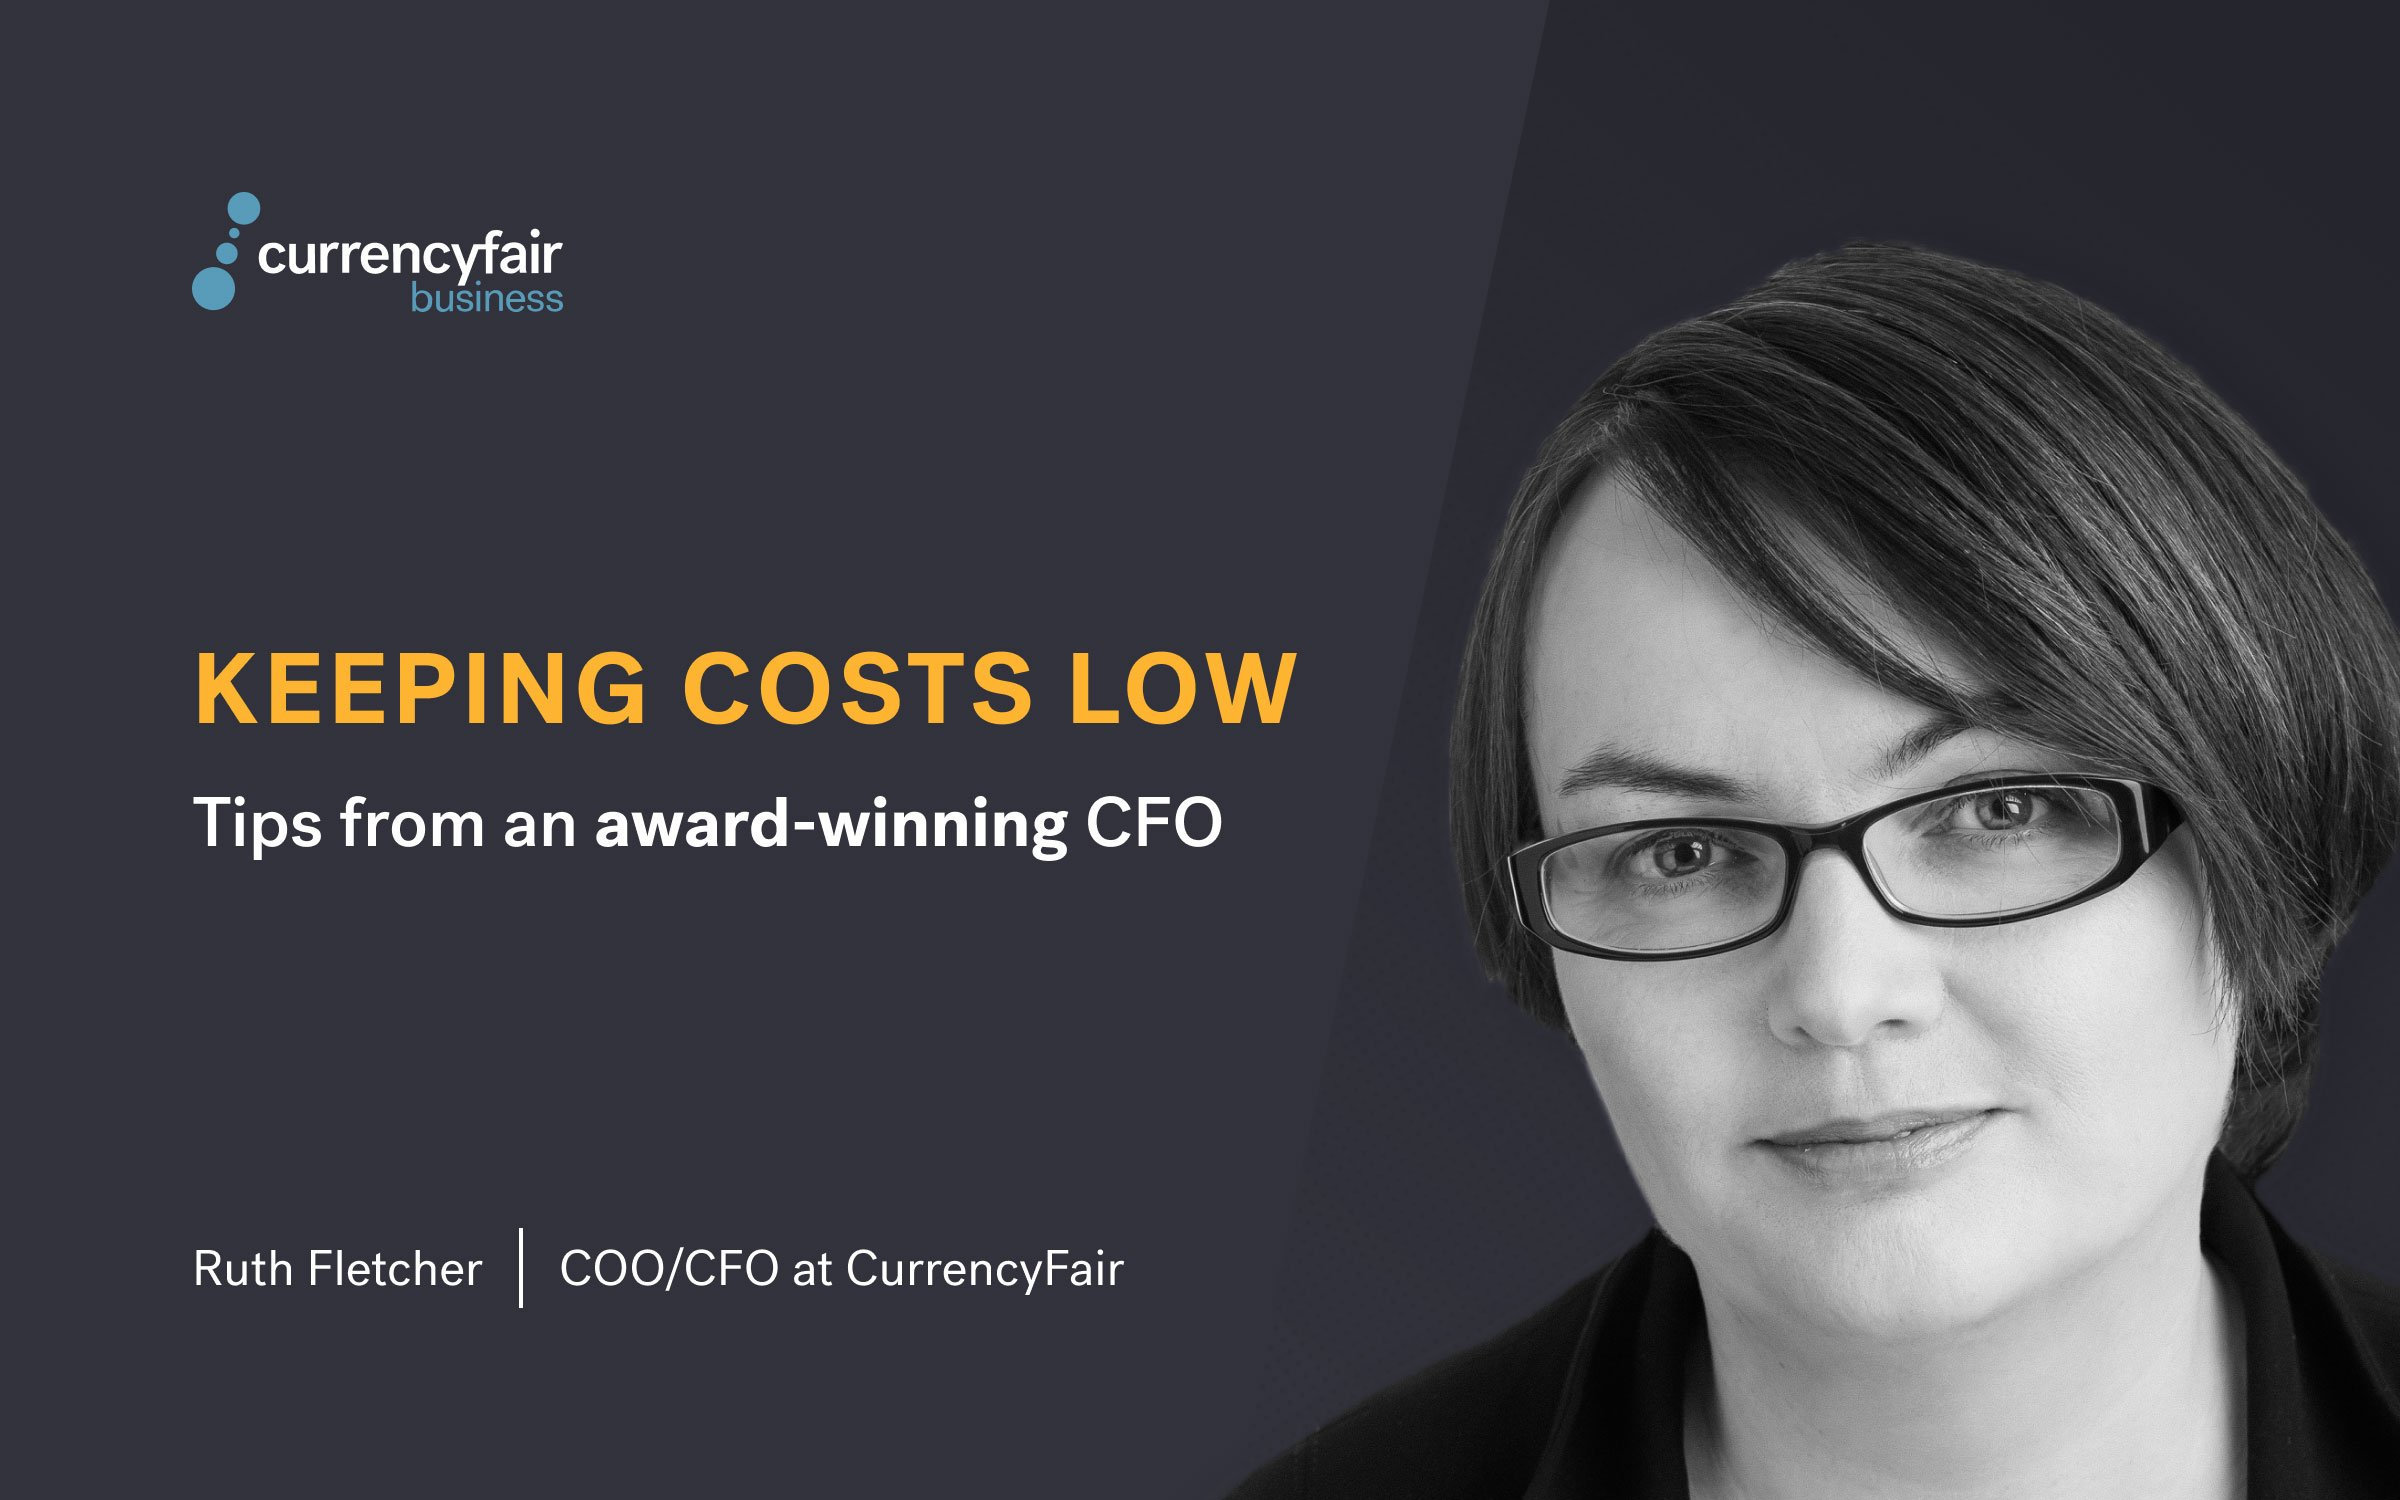 Keeping Costs Low: Tips from an Award-Winning CFO